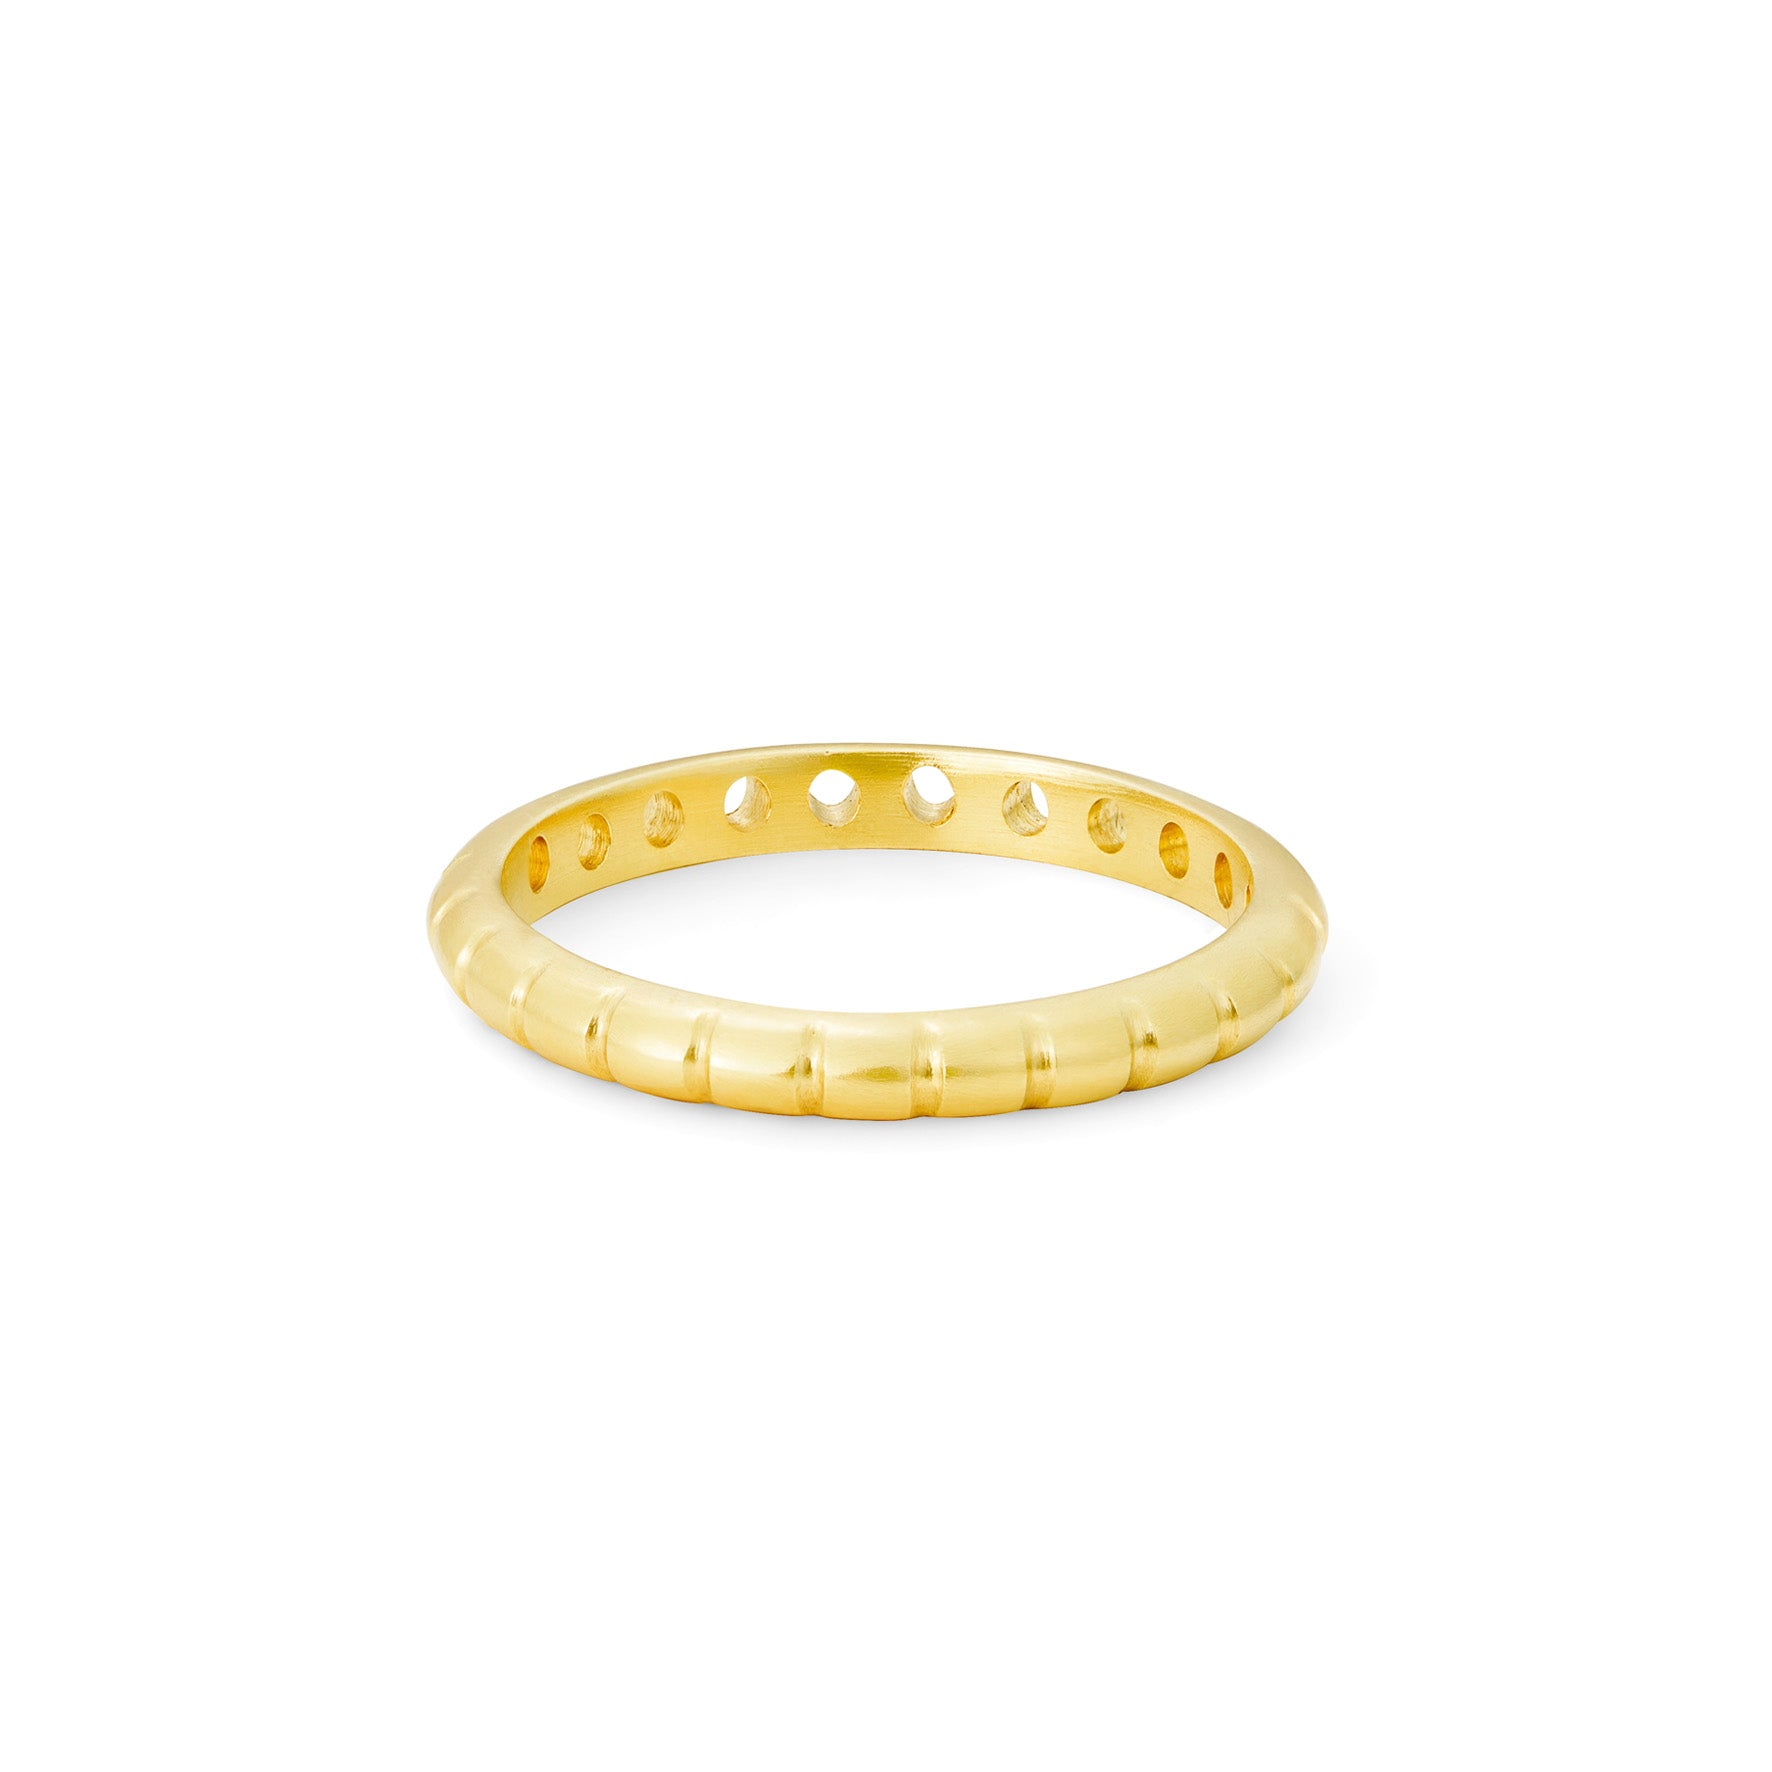 Bague Bi Or jaune